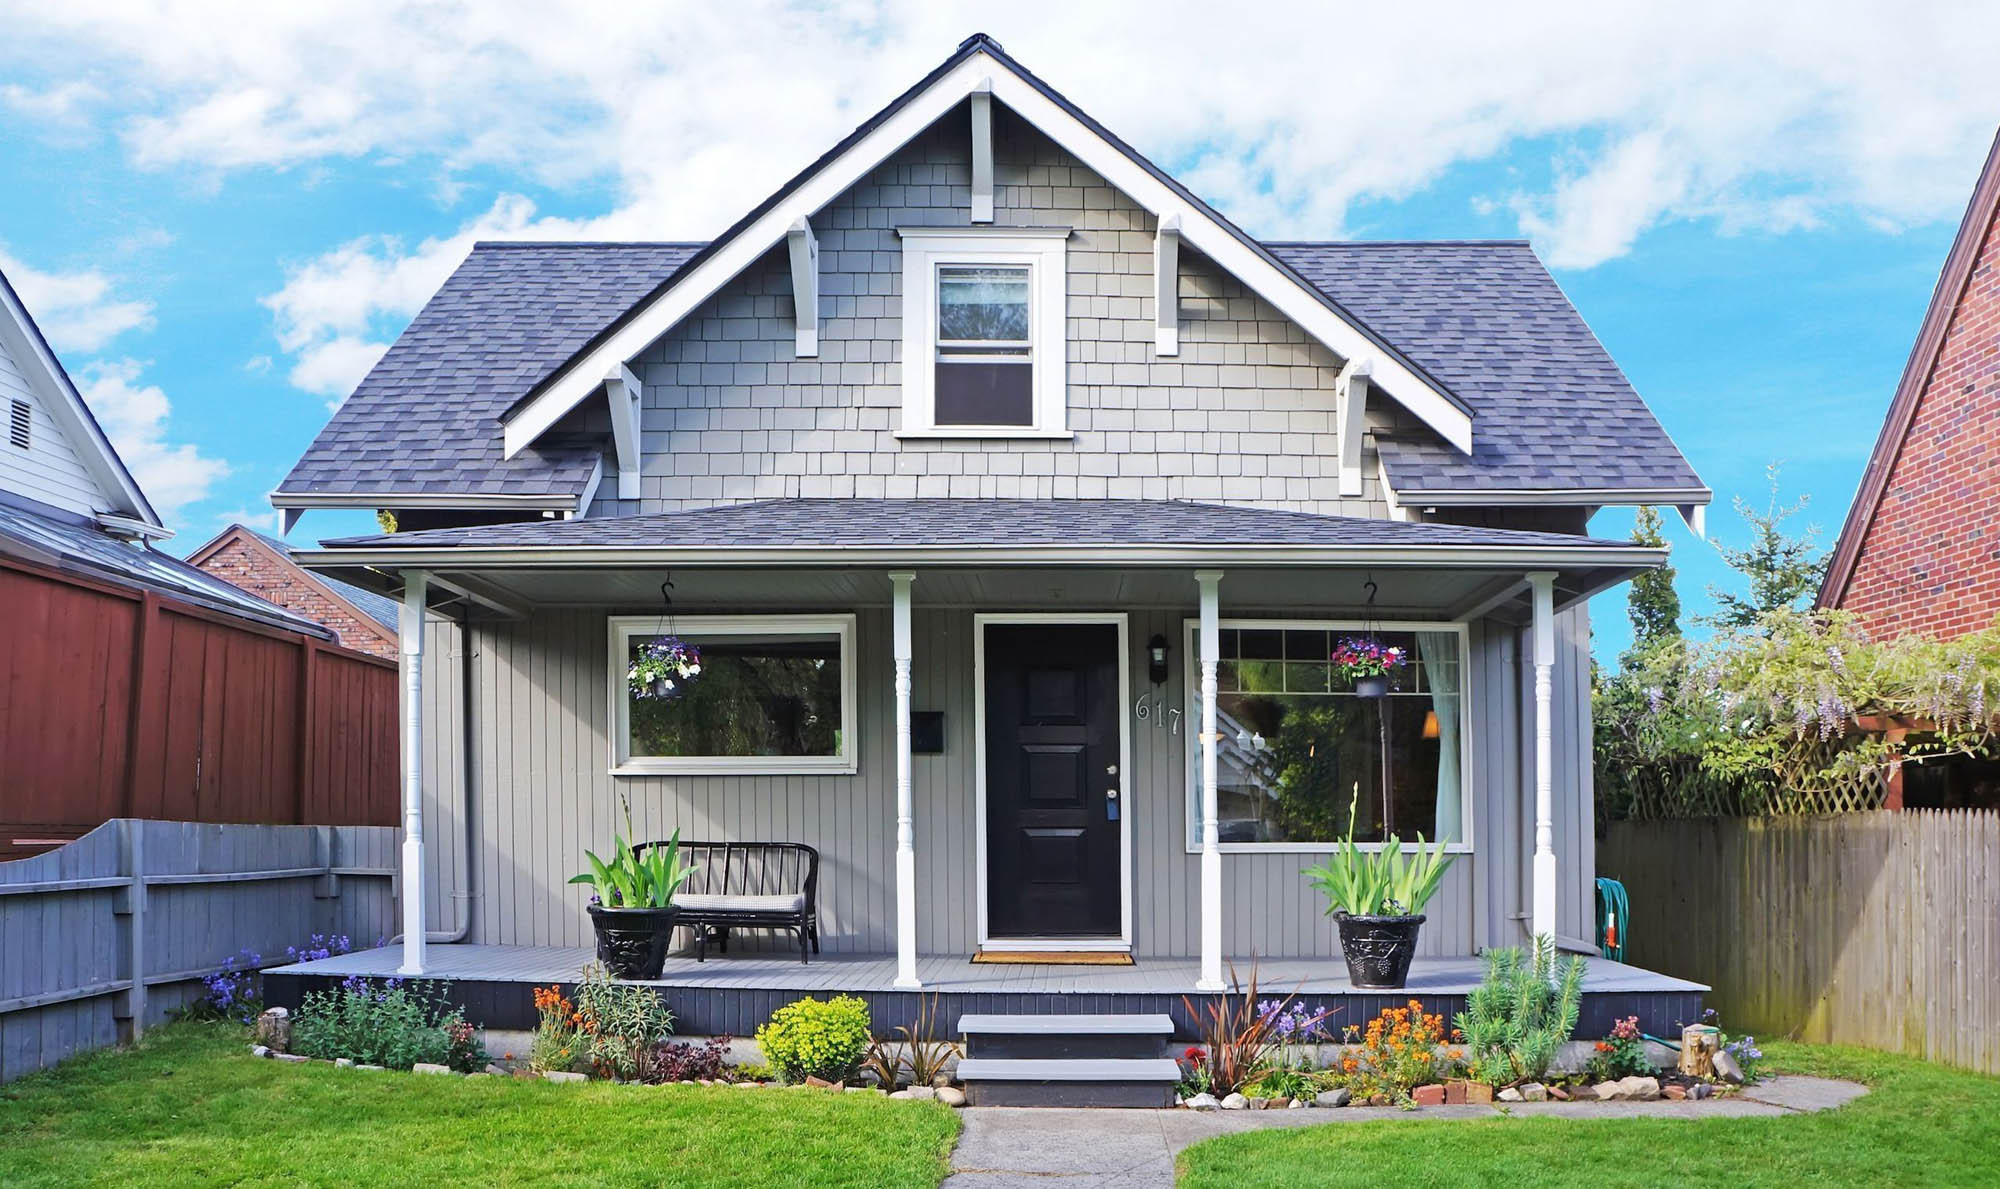 small house siding color ideas - gray small house with white trim and columns dark brown door